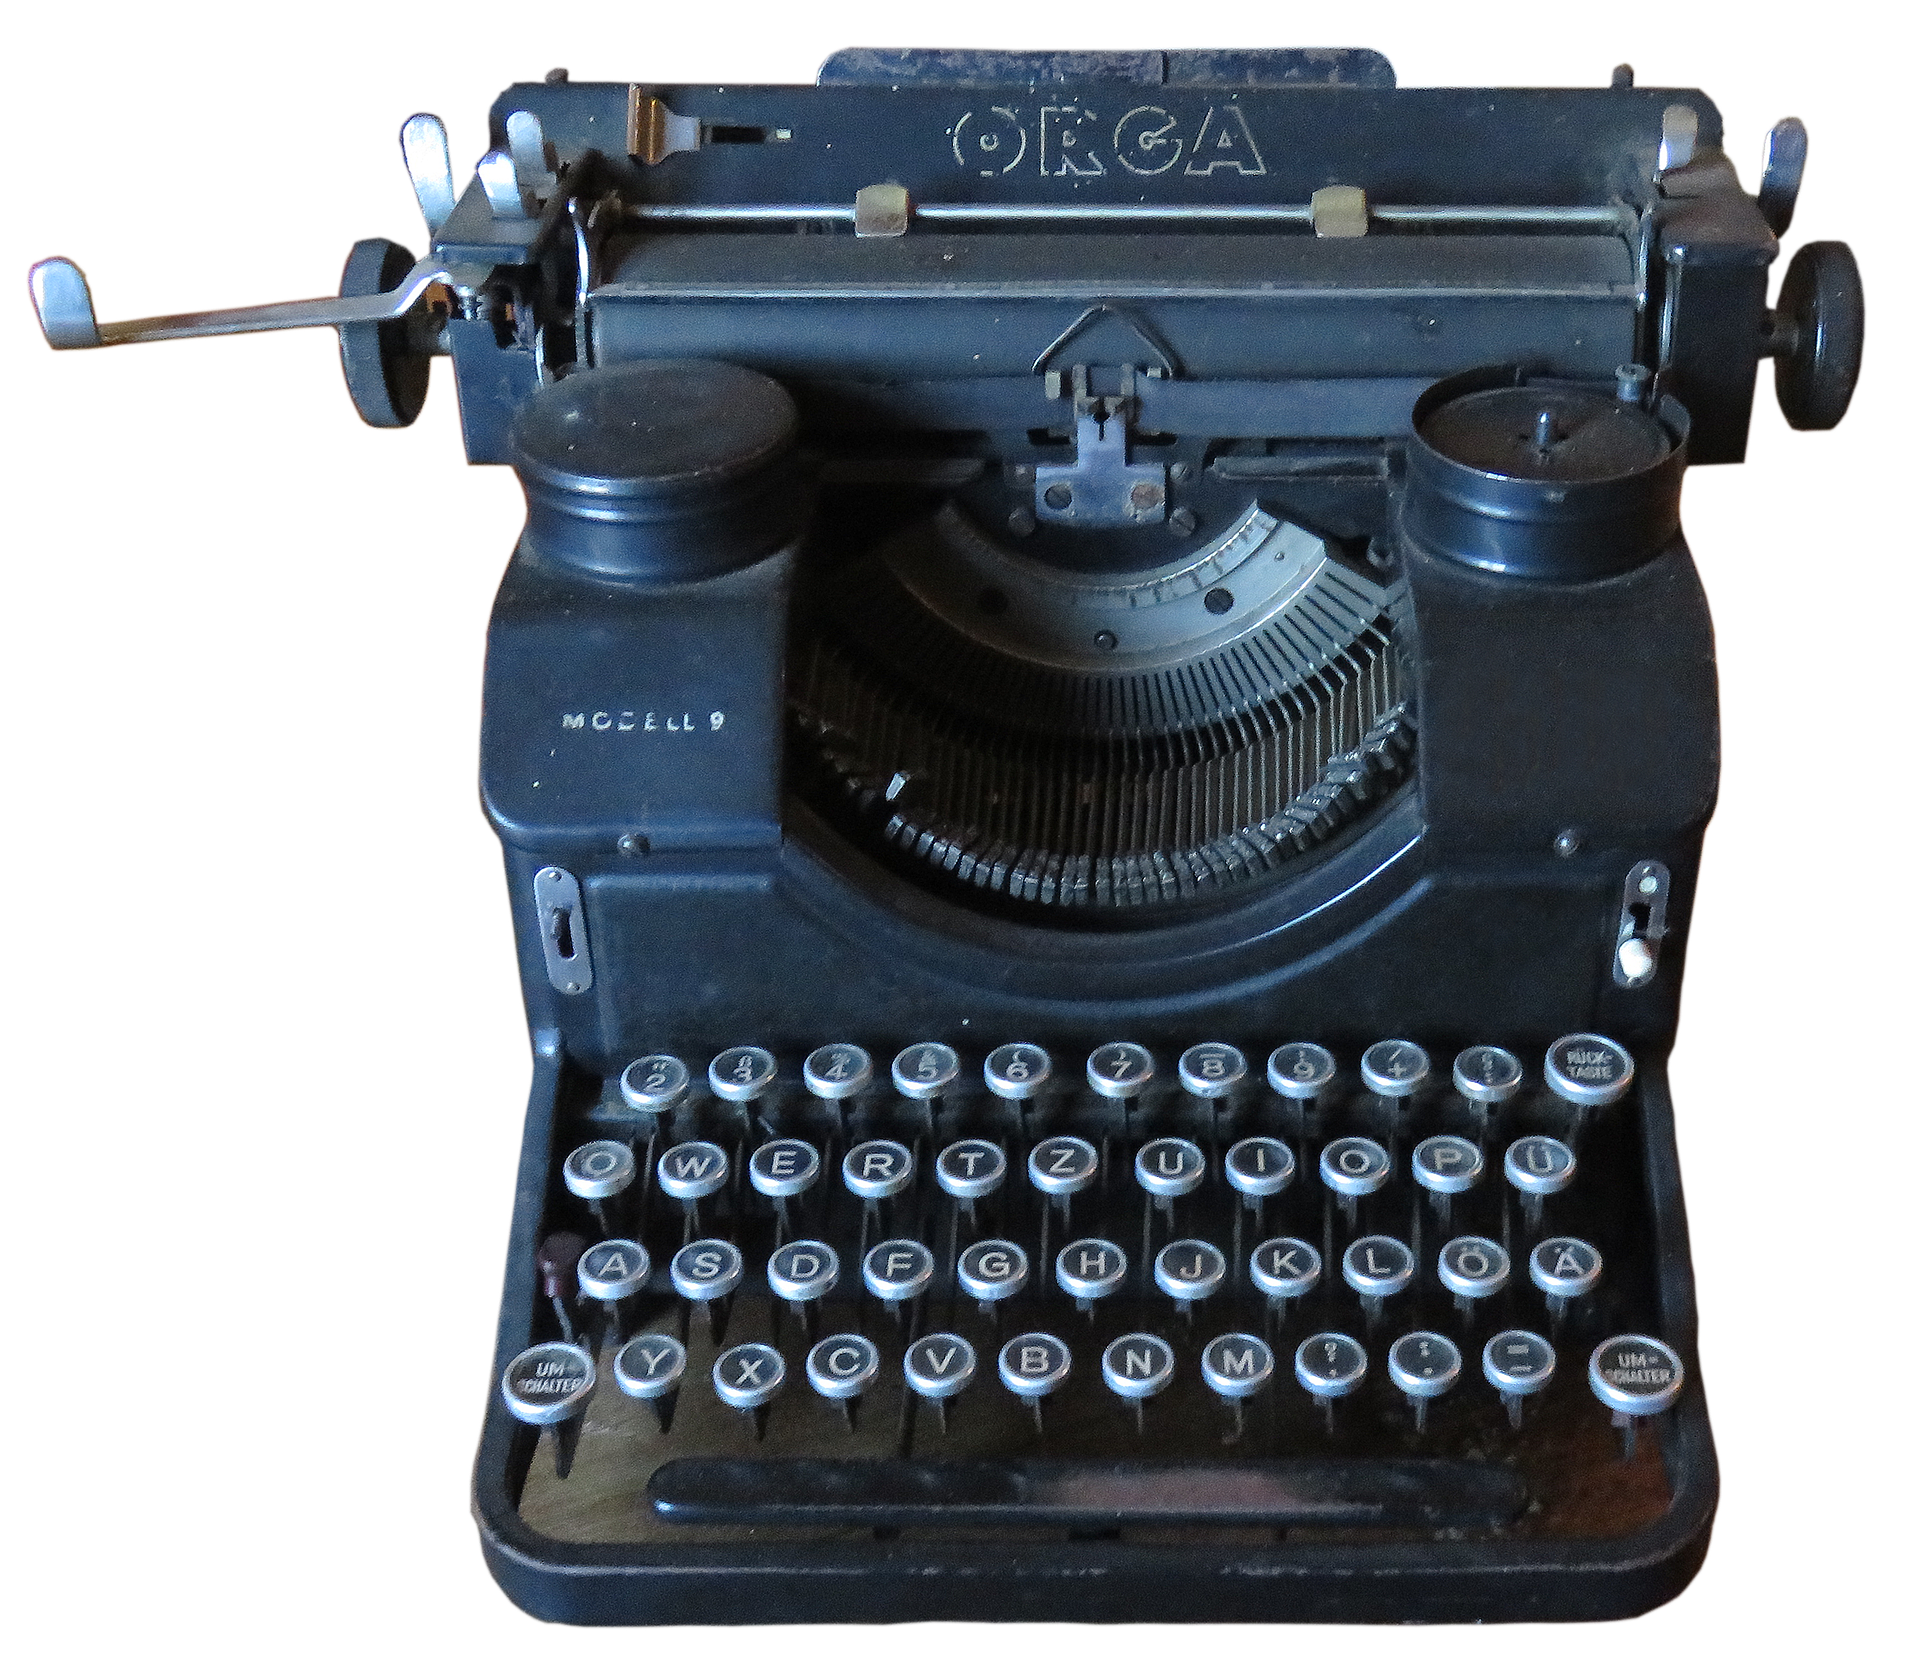 Old typewriter png. Proprcopy double space after